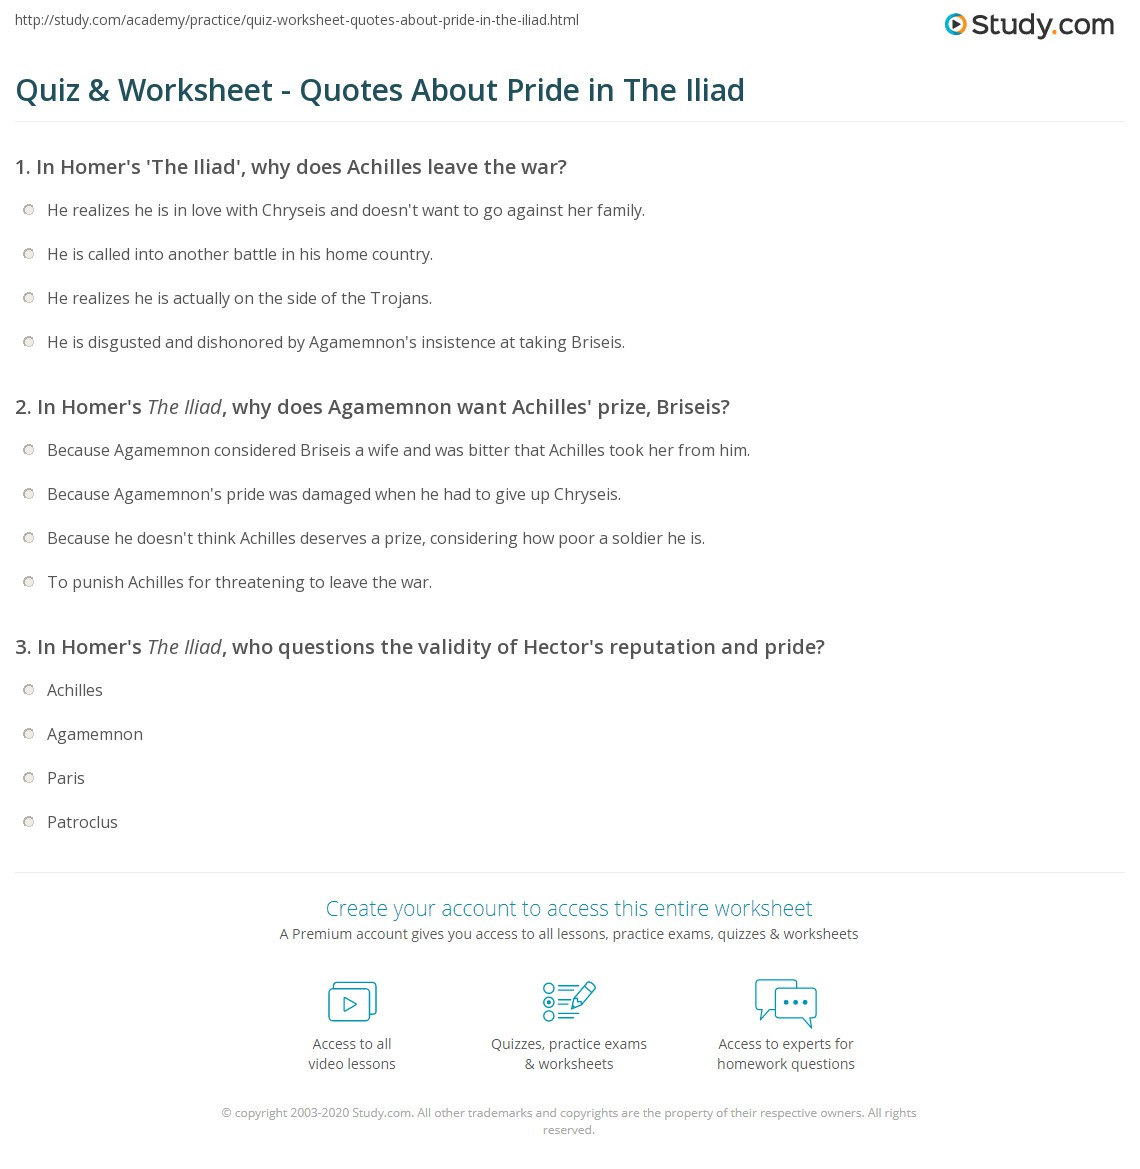 quiz worksheet quotes about pride in the iliad com